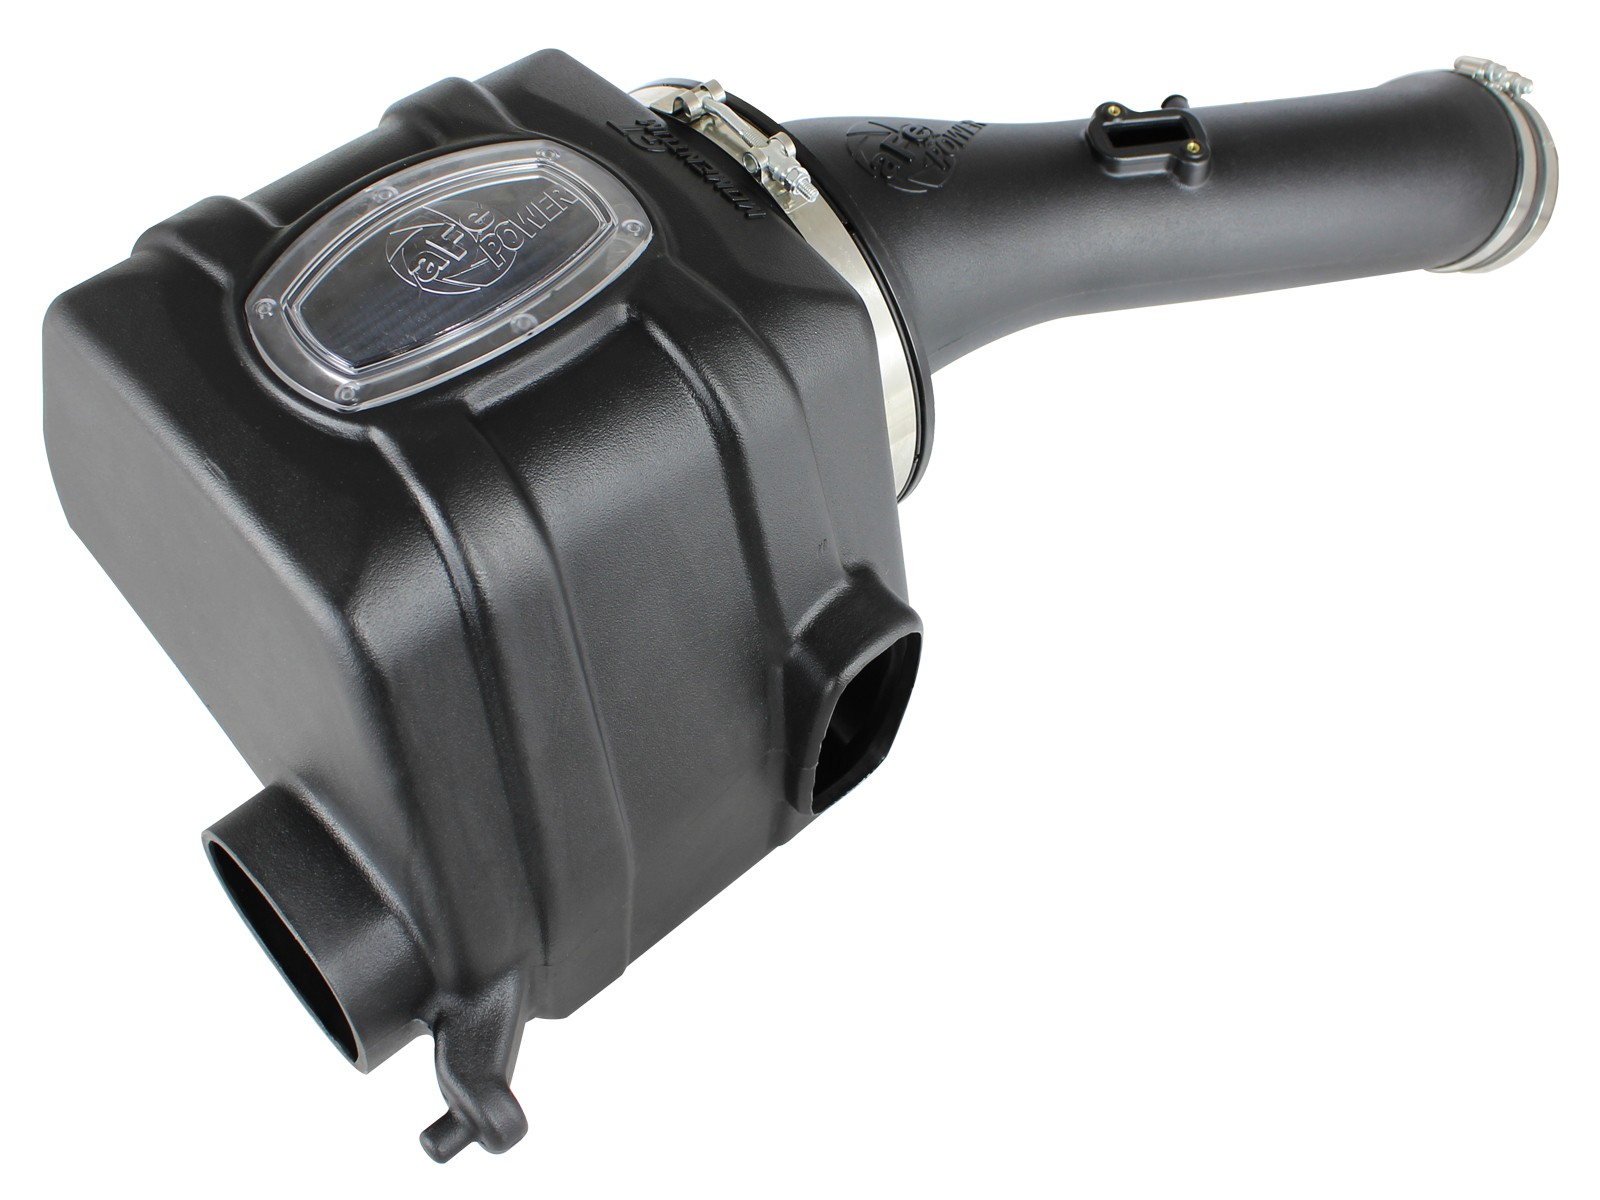 aFe POWER 54-76003 Momentum GT Pro 5R Cold Air Intake System